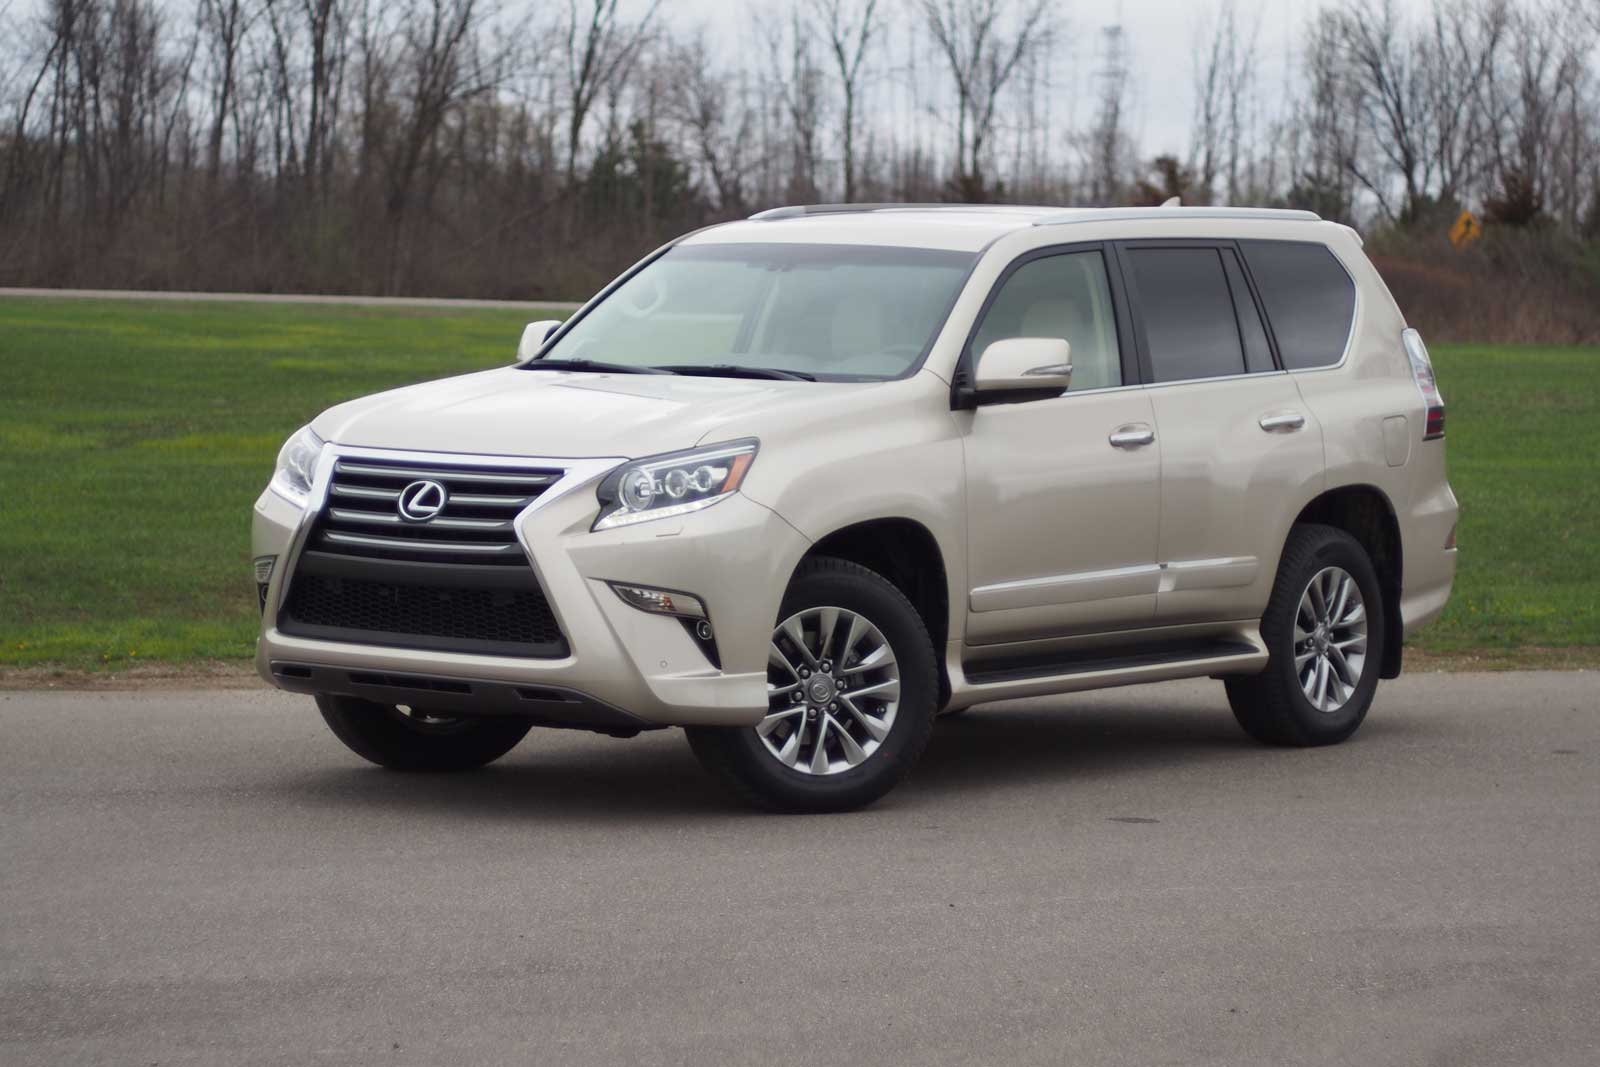 2016 lexus gx 460 photos informations articles. Black Bedroom Furniture Sets. Home Design Ideas